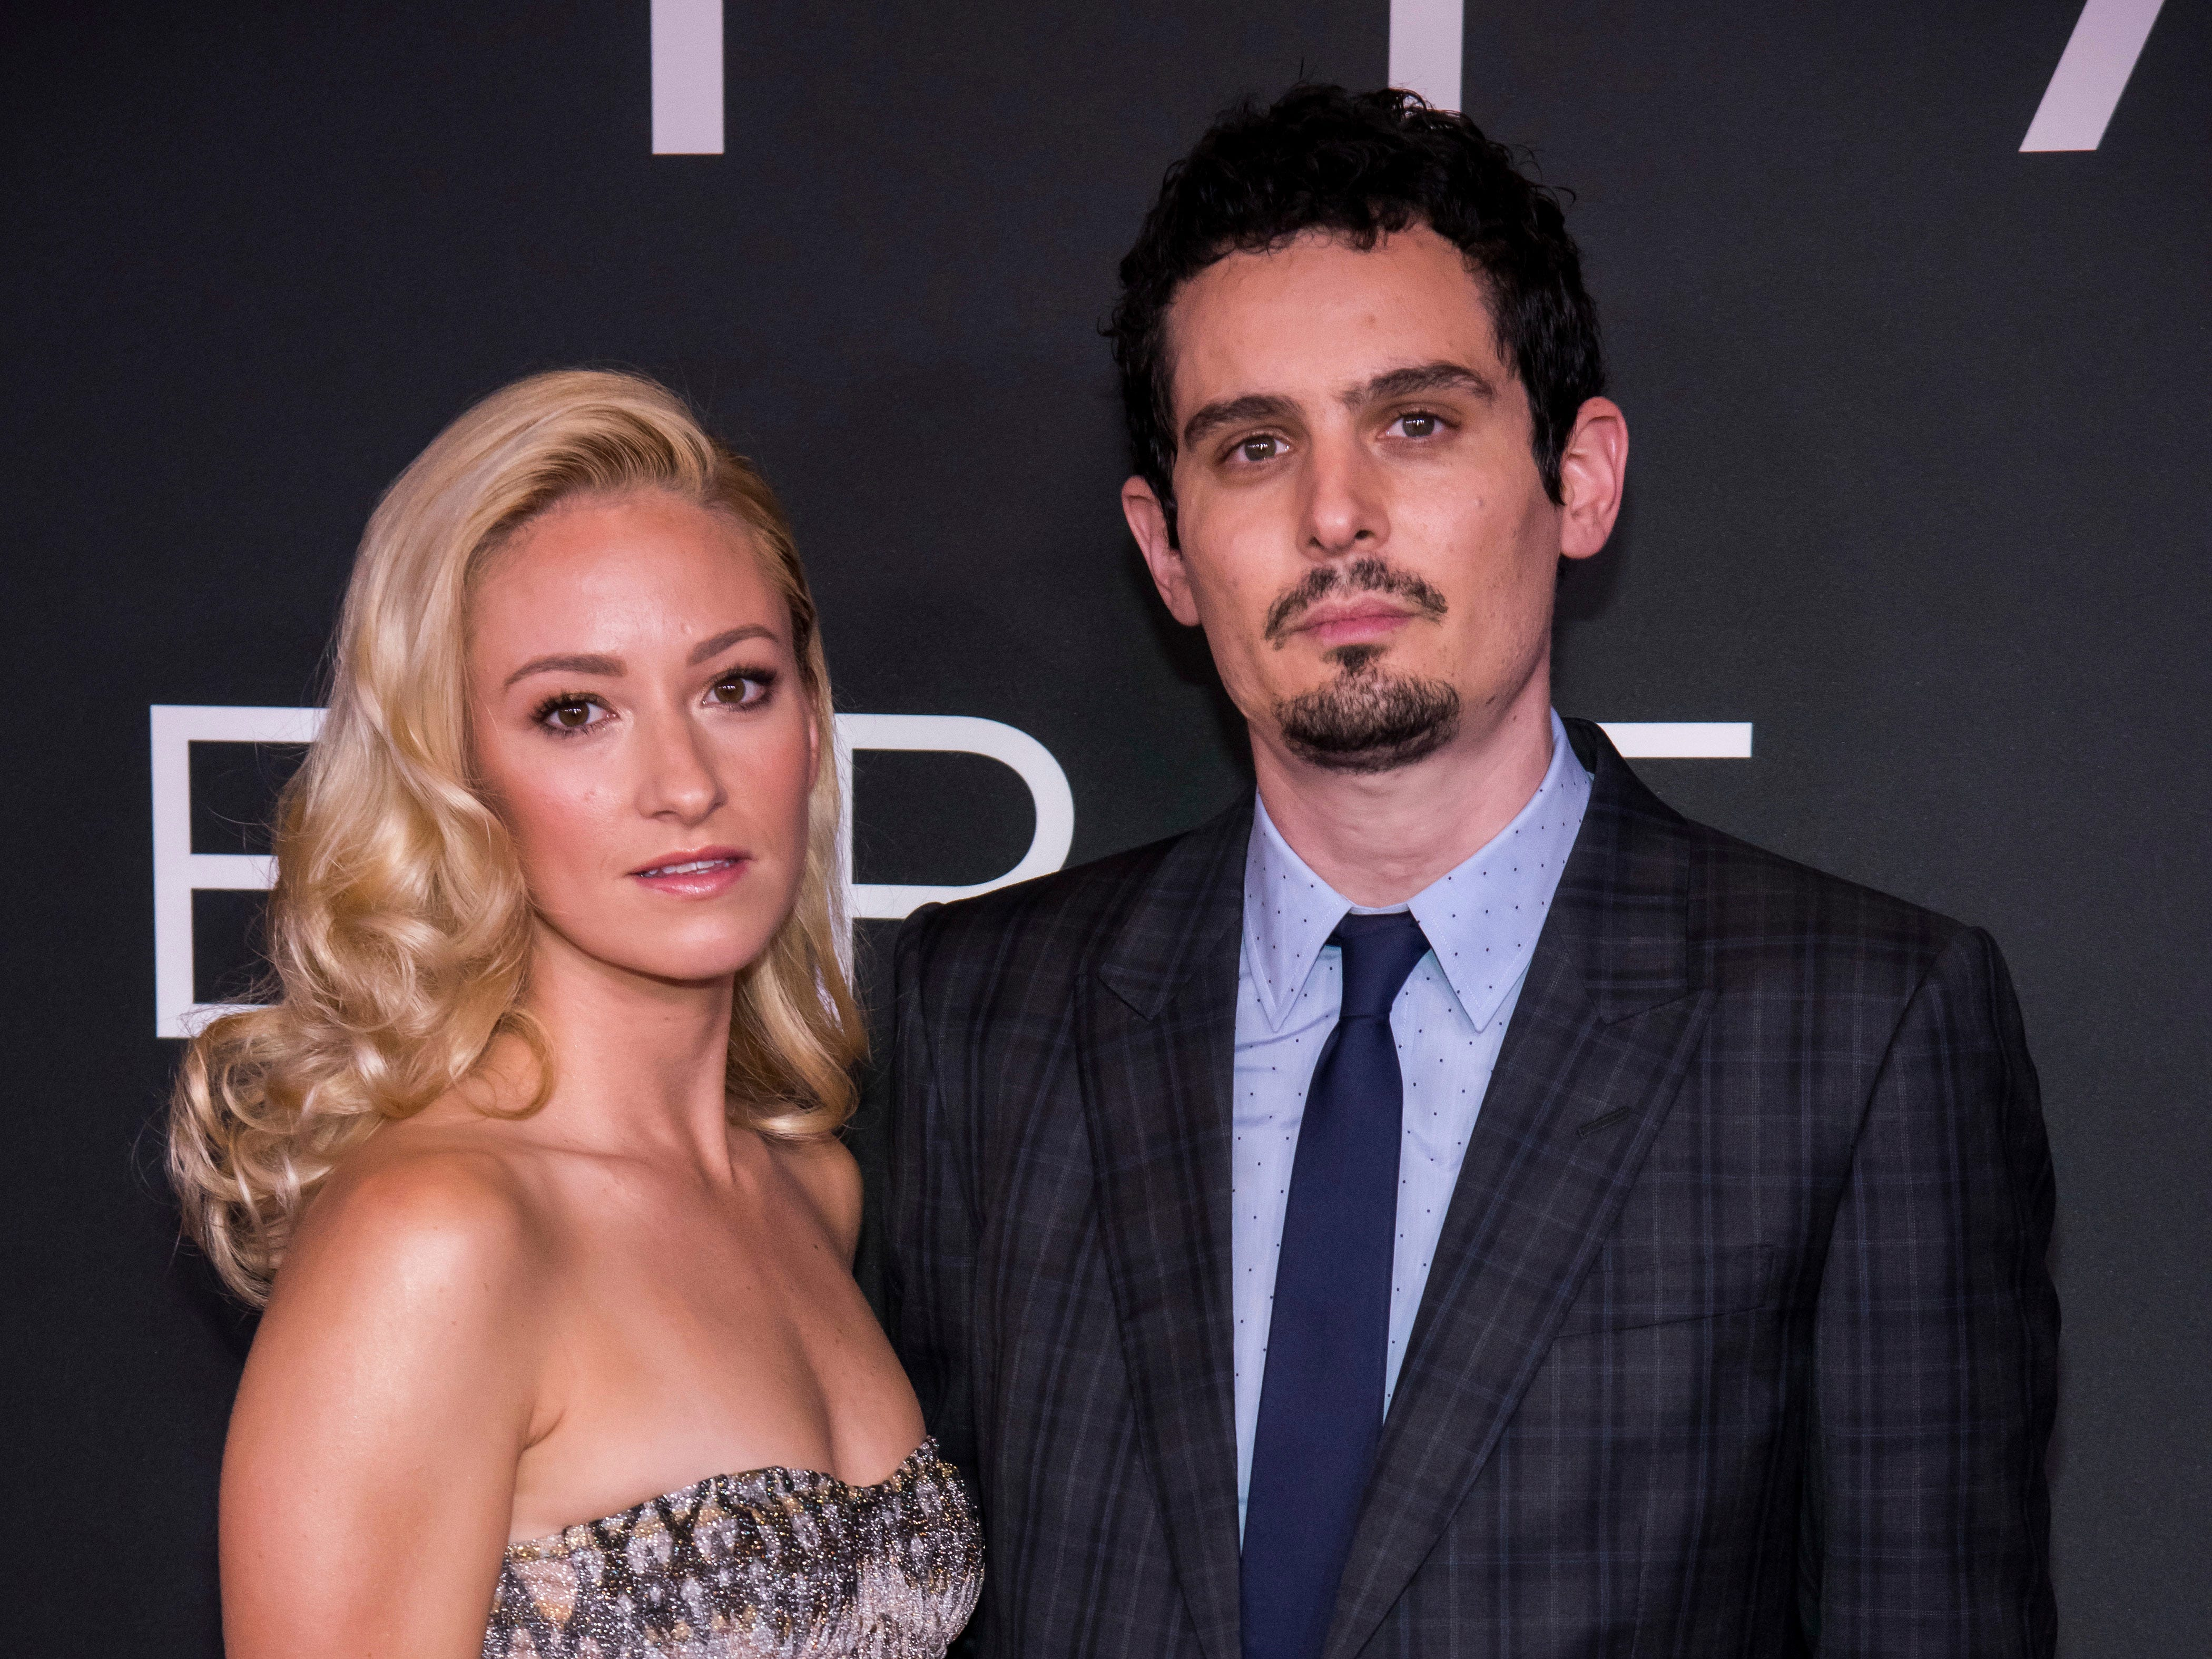 """Olivia Hamilton and Damien Chazelle attend the """"First Man"""" premiere at the National Air and Space Museum of the Smithsonian Institution on Thursday, Oct. 4, 2018, in Washington. (Photo by Charles Sykes/Invision/AP) ORG XMIT: NYCS102"""